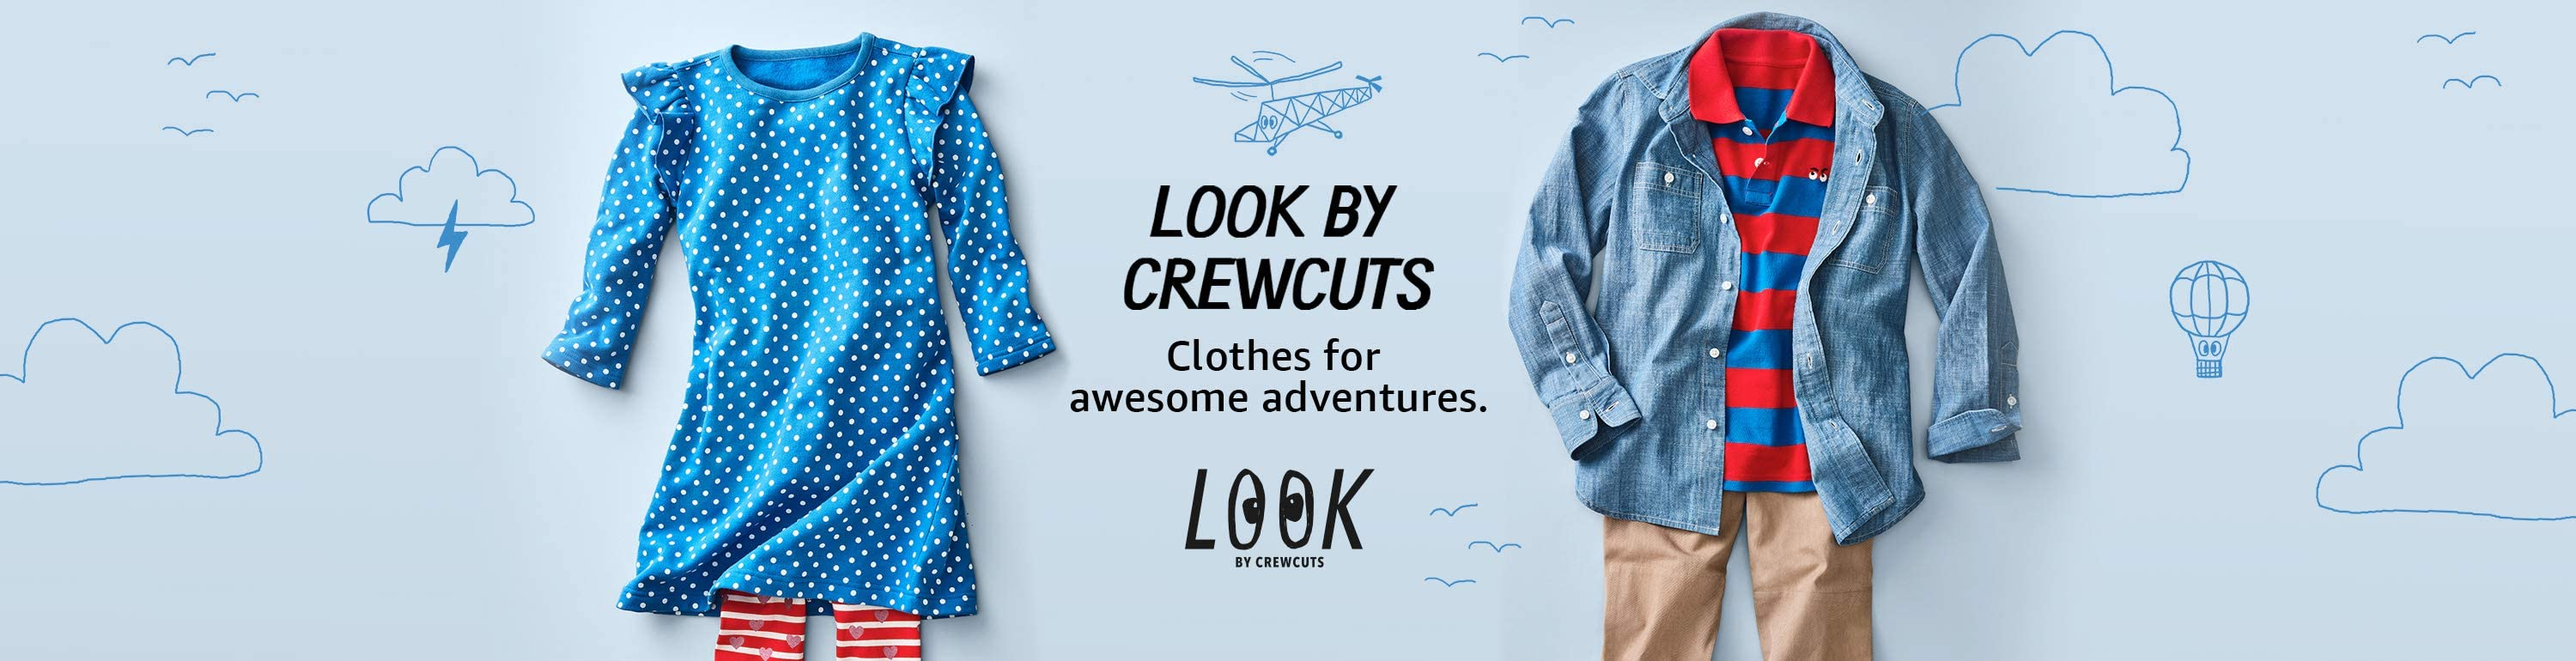 LOOK by crewcuts. Amazon exclusive kids clothing at great prices.